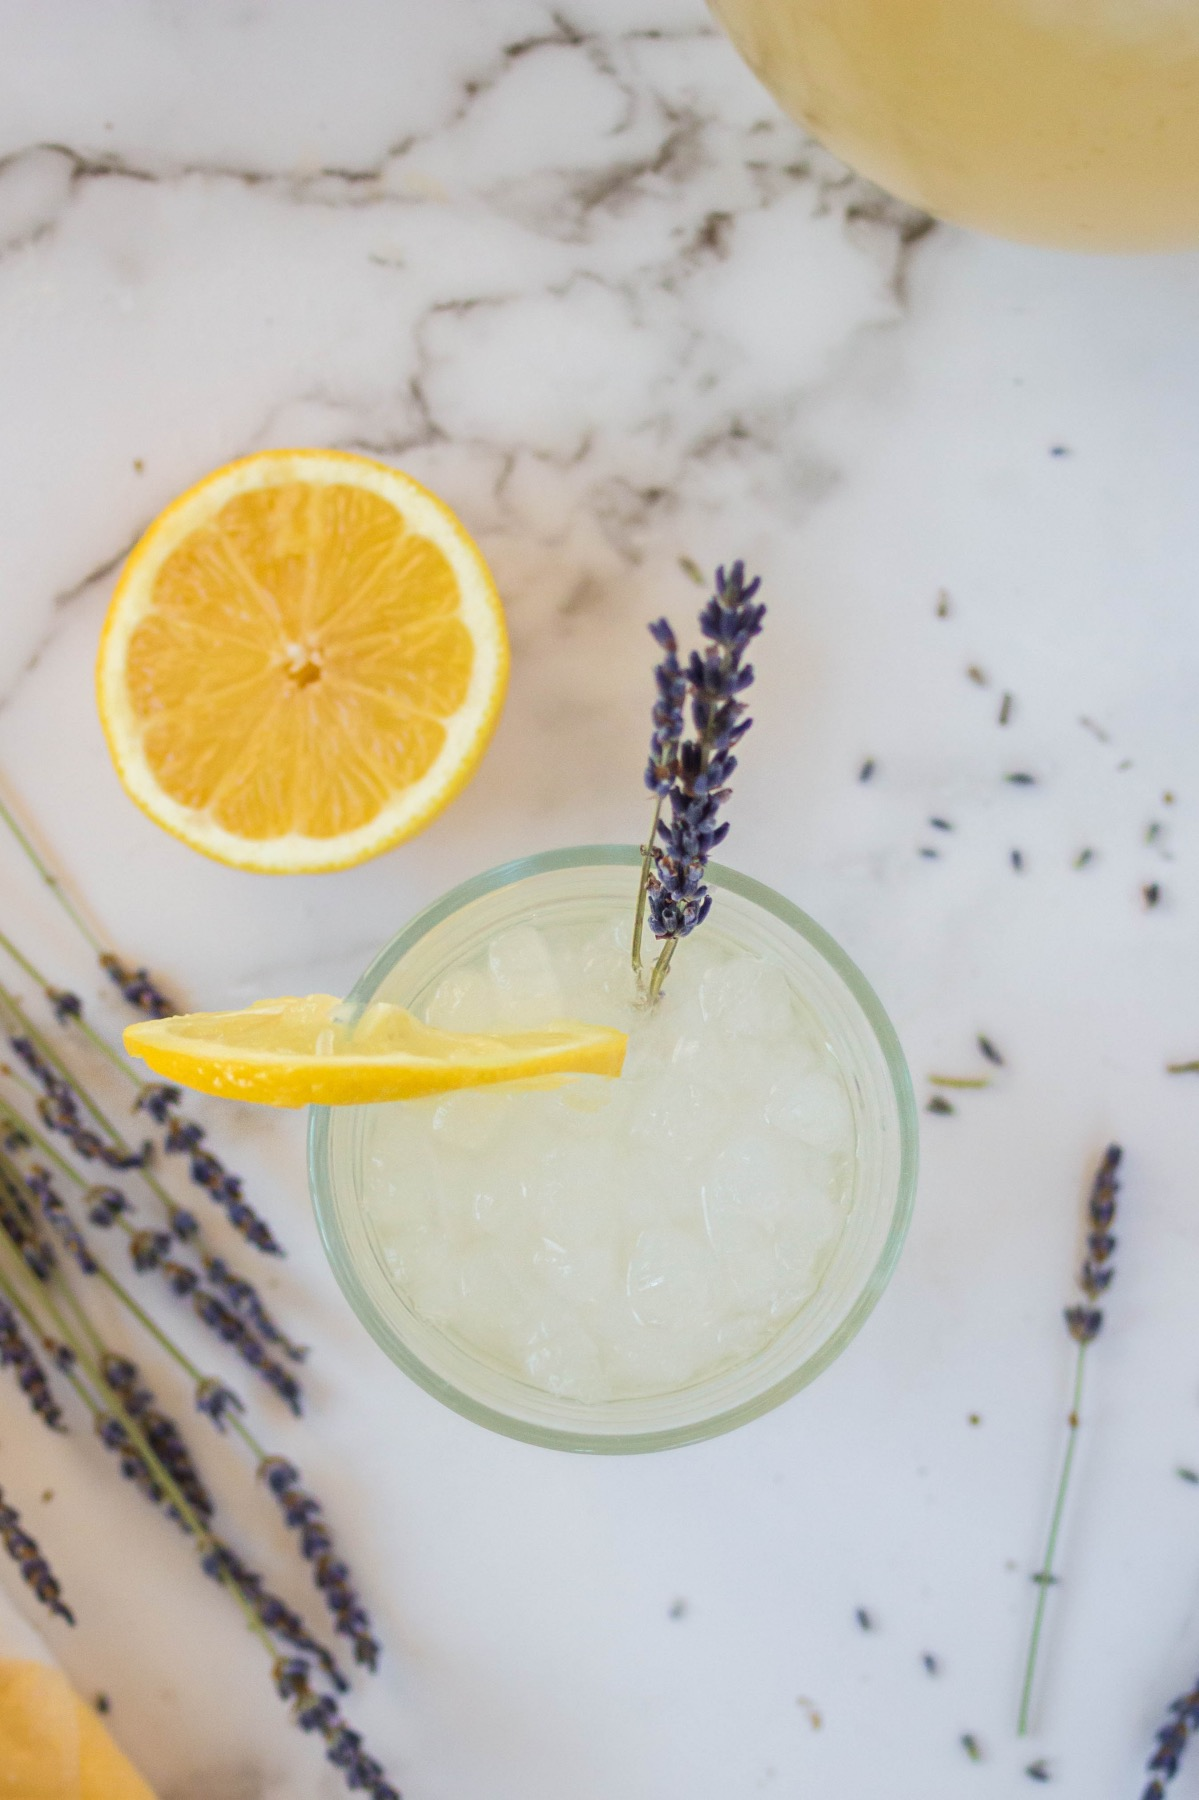 add a sprig of lavender to the lavender lemonade recipe